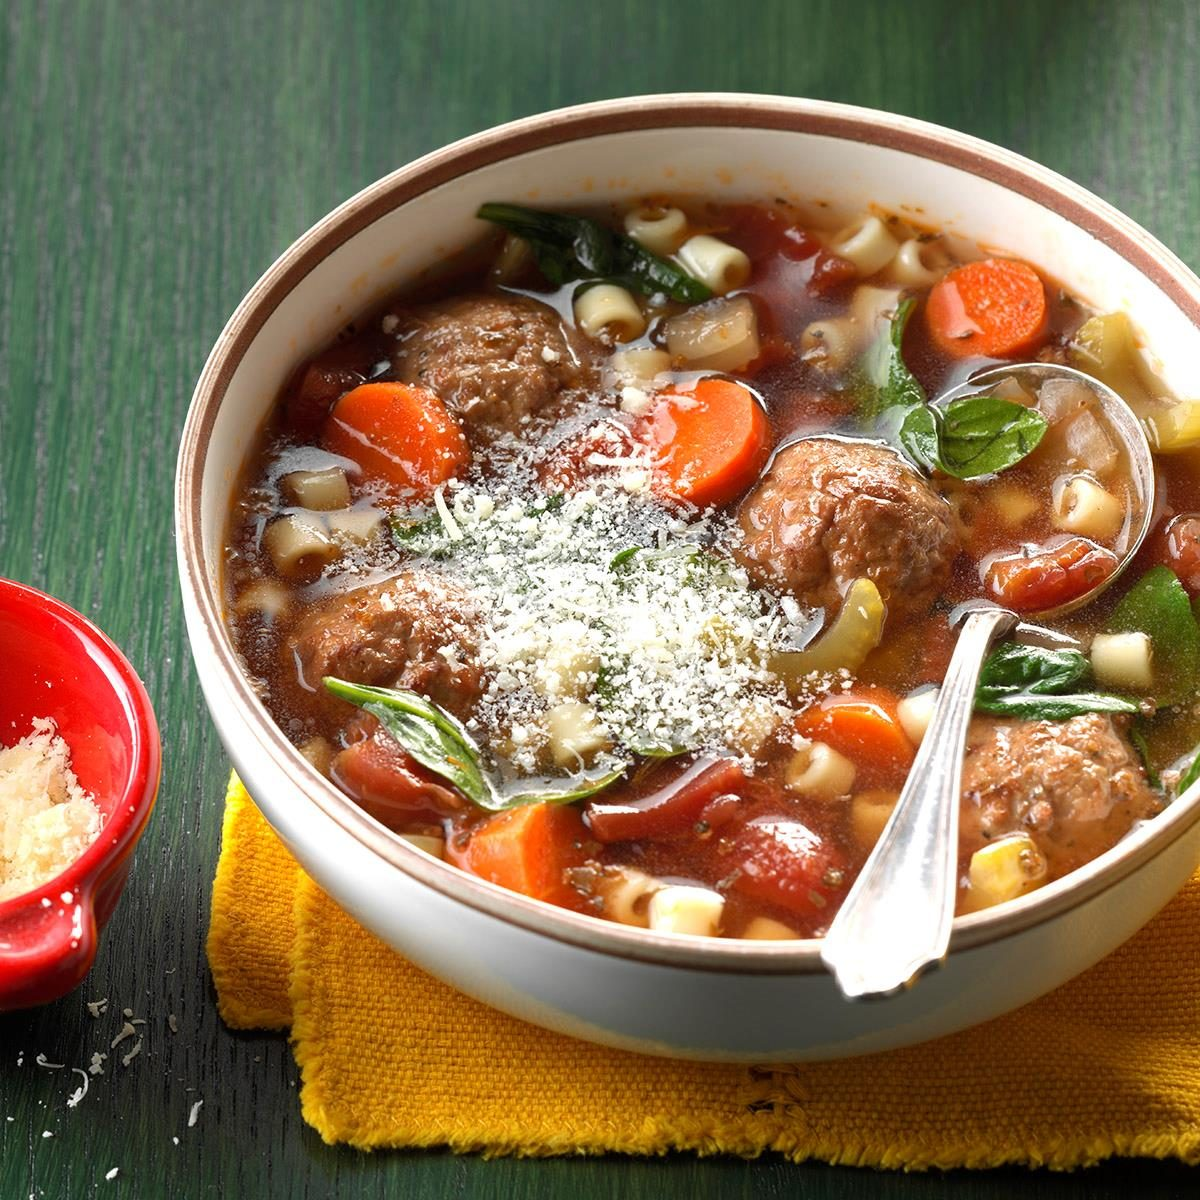 Sunday: Slow-Cooked Meatball Soup